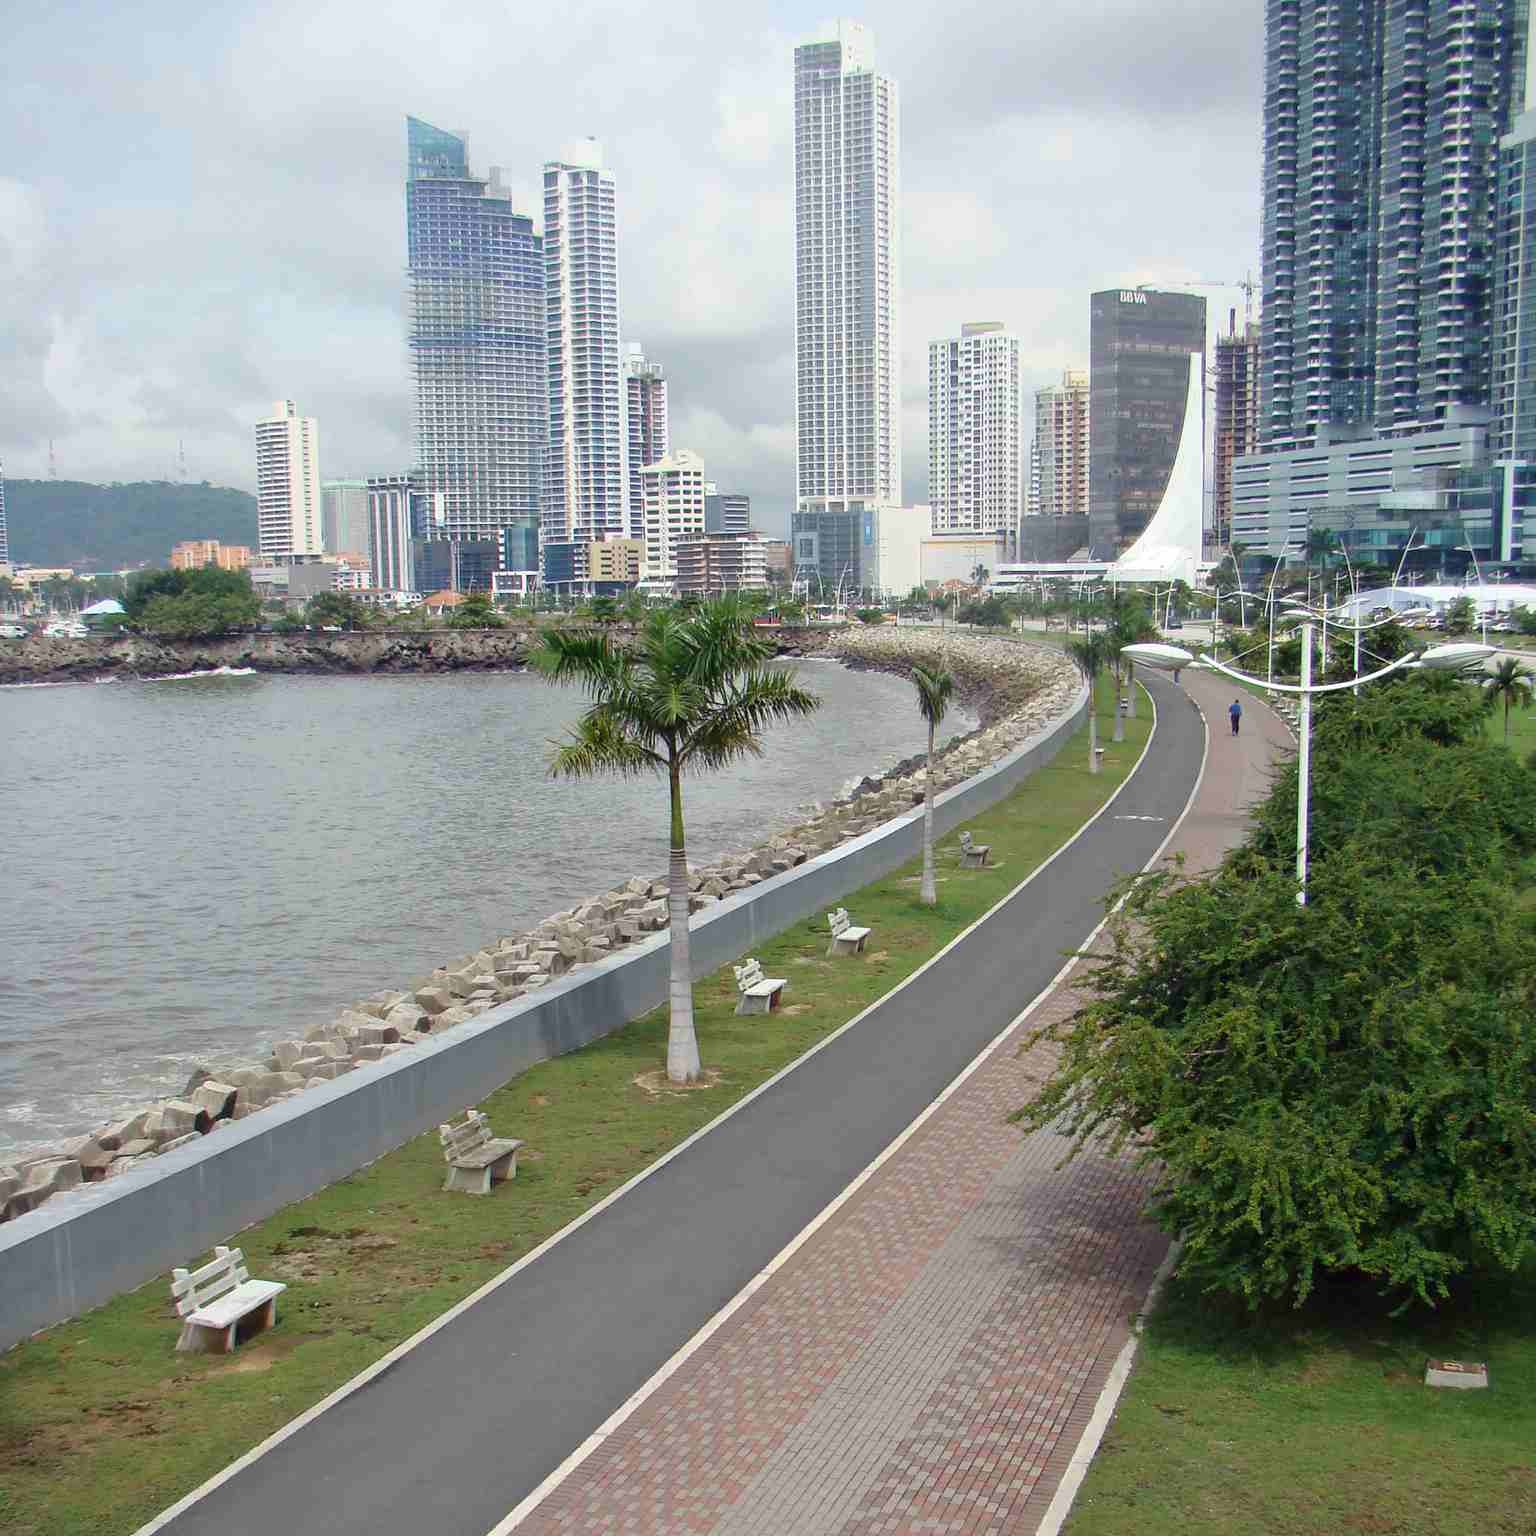 Jogging paths line the waterfront in the heart of Panama City, Panama.